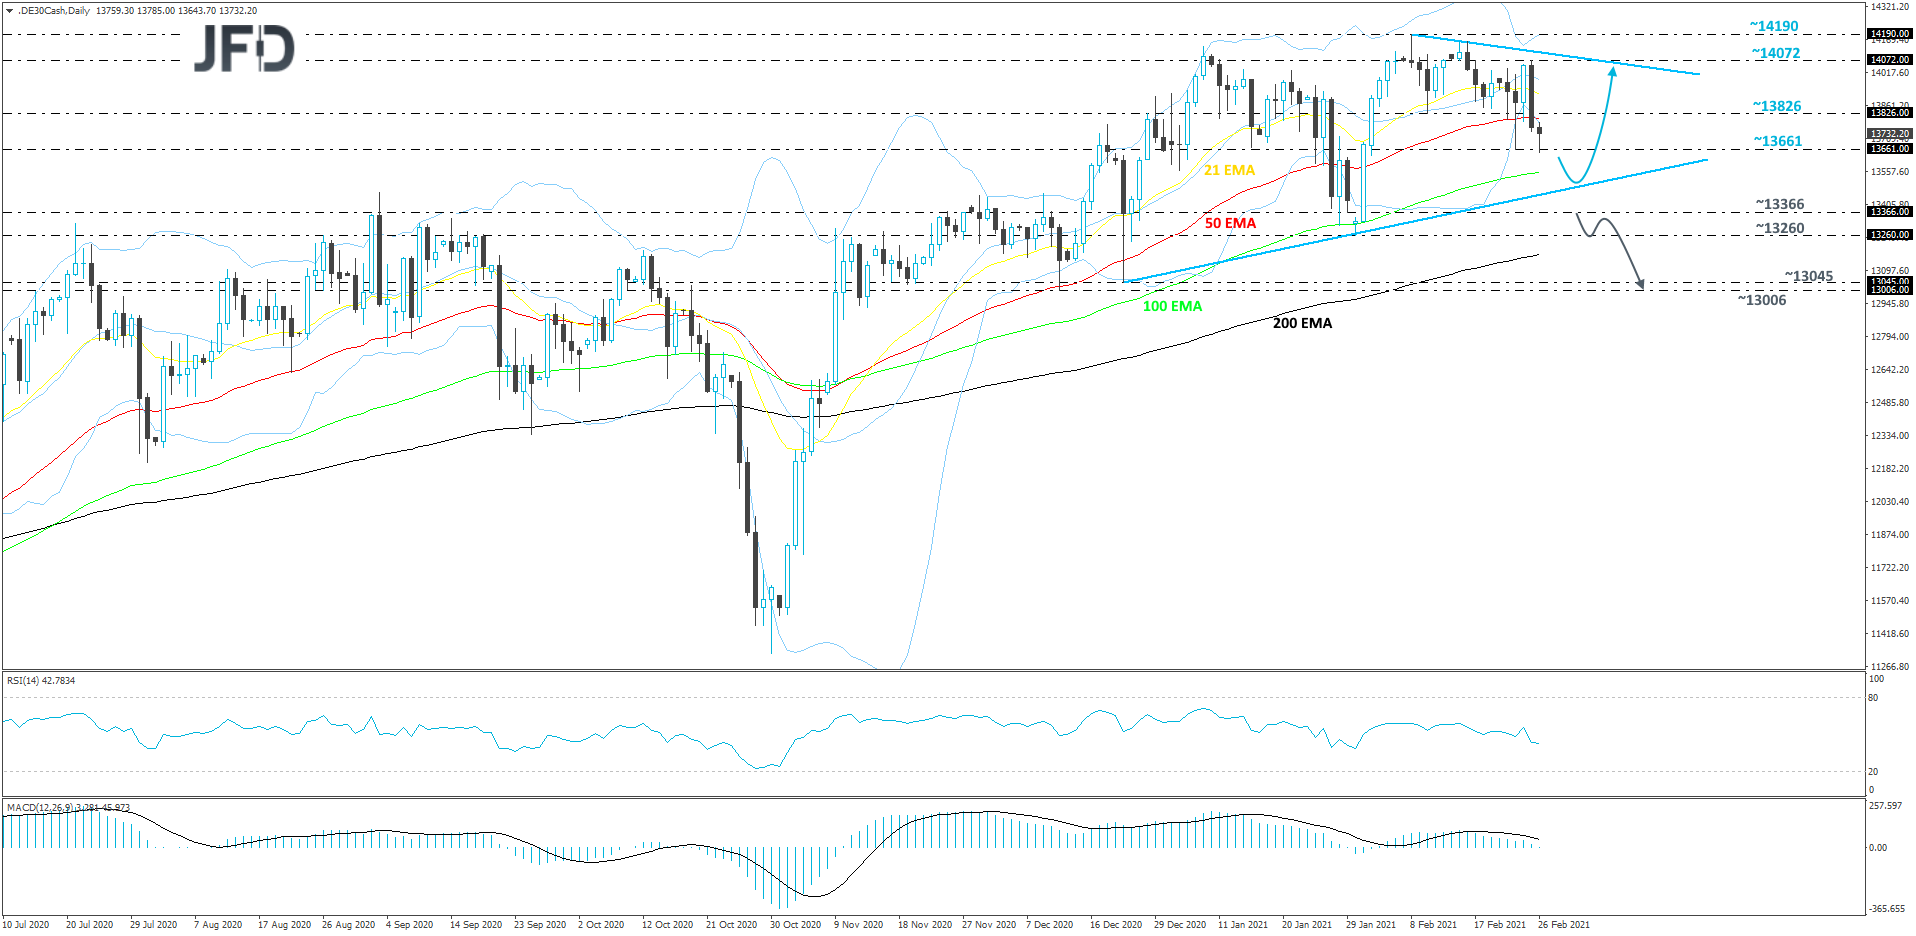 DAX daily chart technical analysis